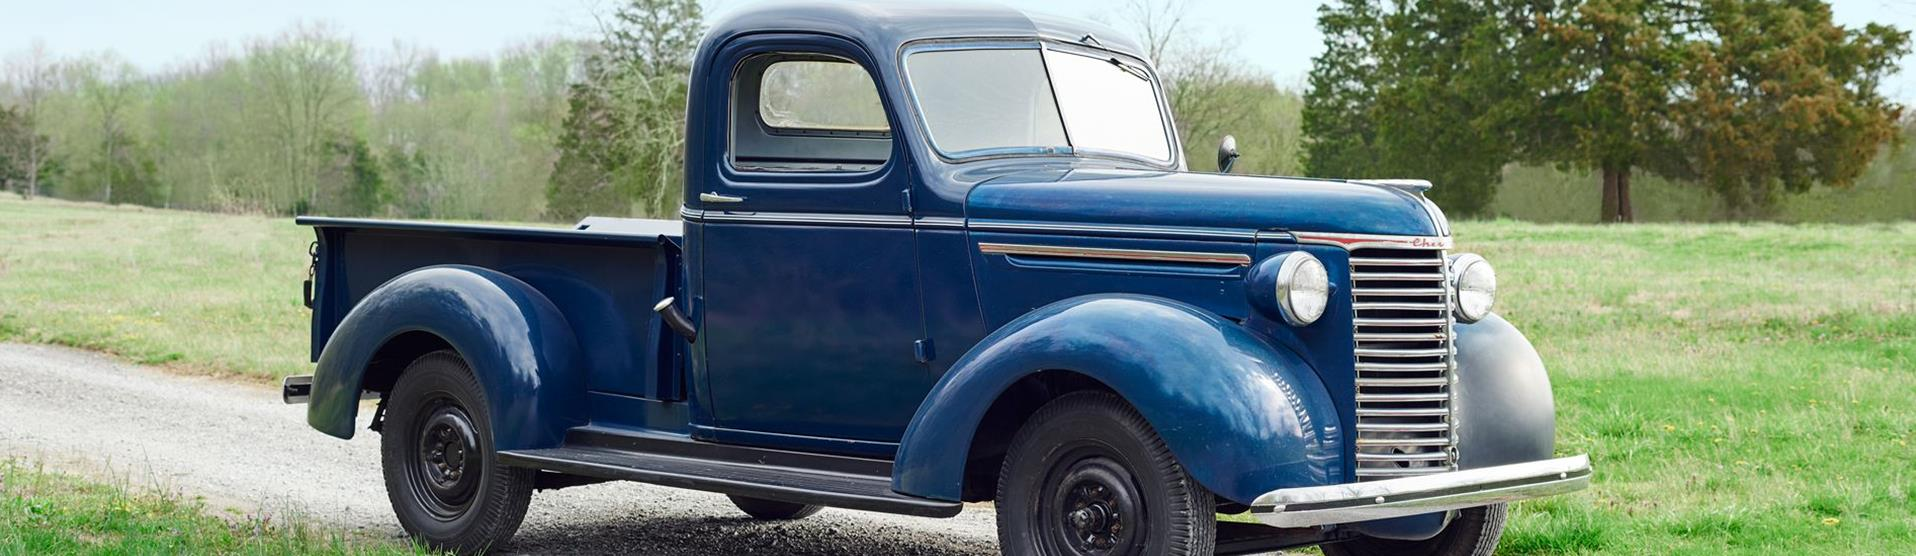 Trucks For Sale In Wv >> Trucks For Sale In Wv Upcoming New Car Release 2020